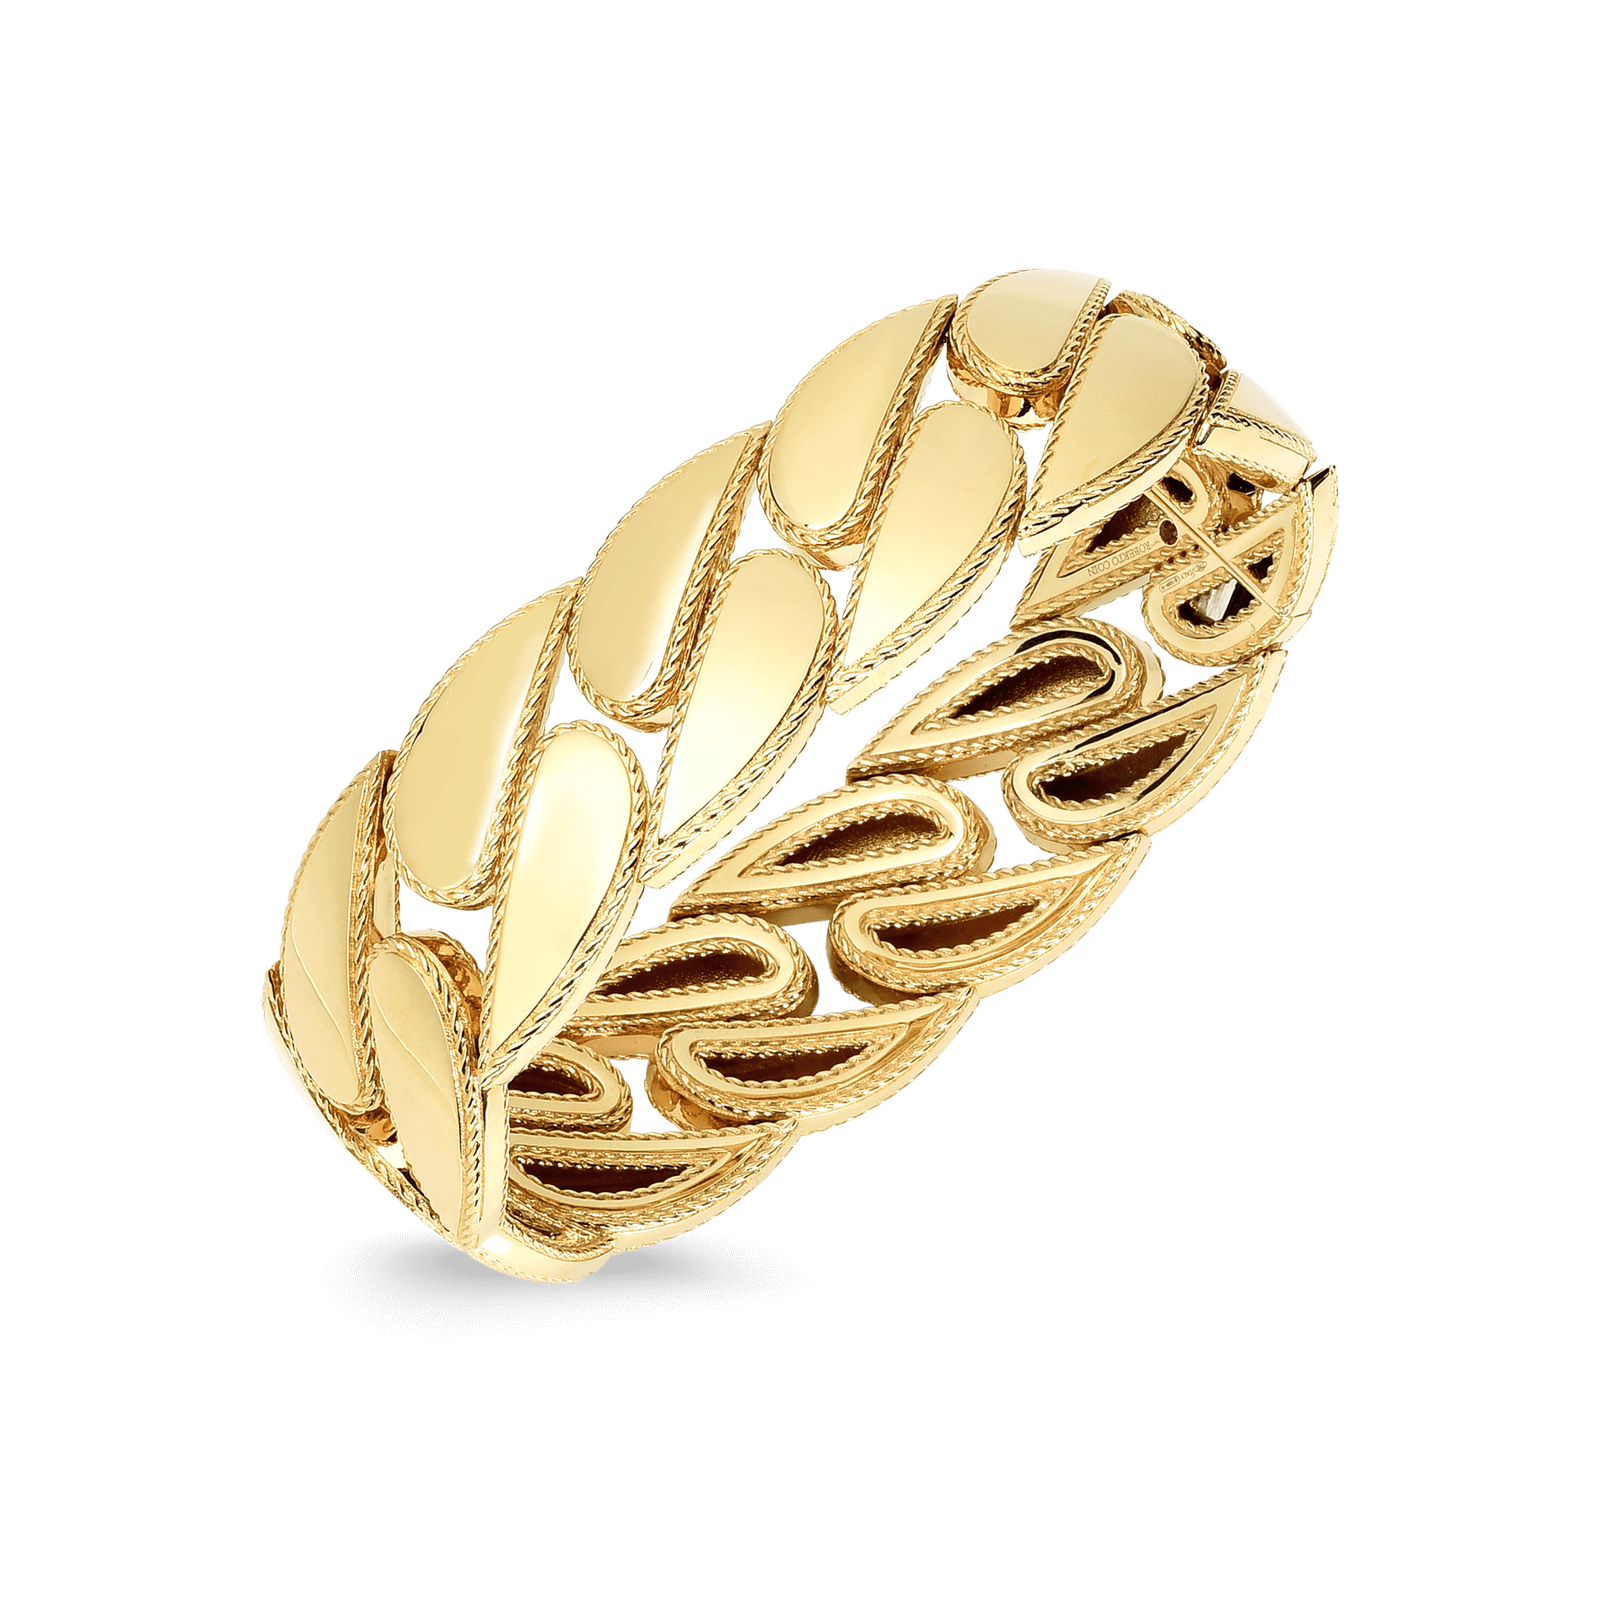 18K Roberto Coin Designer Gold Ring With Diamonds